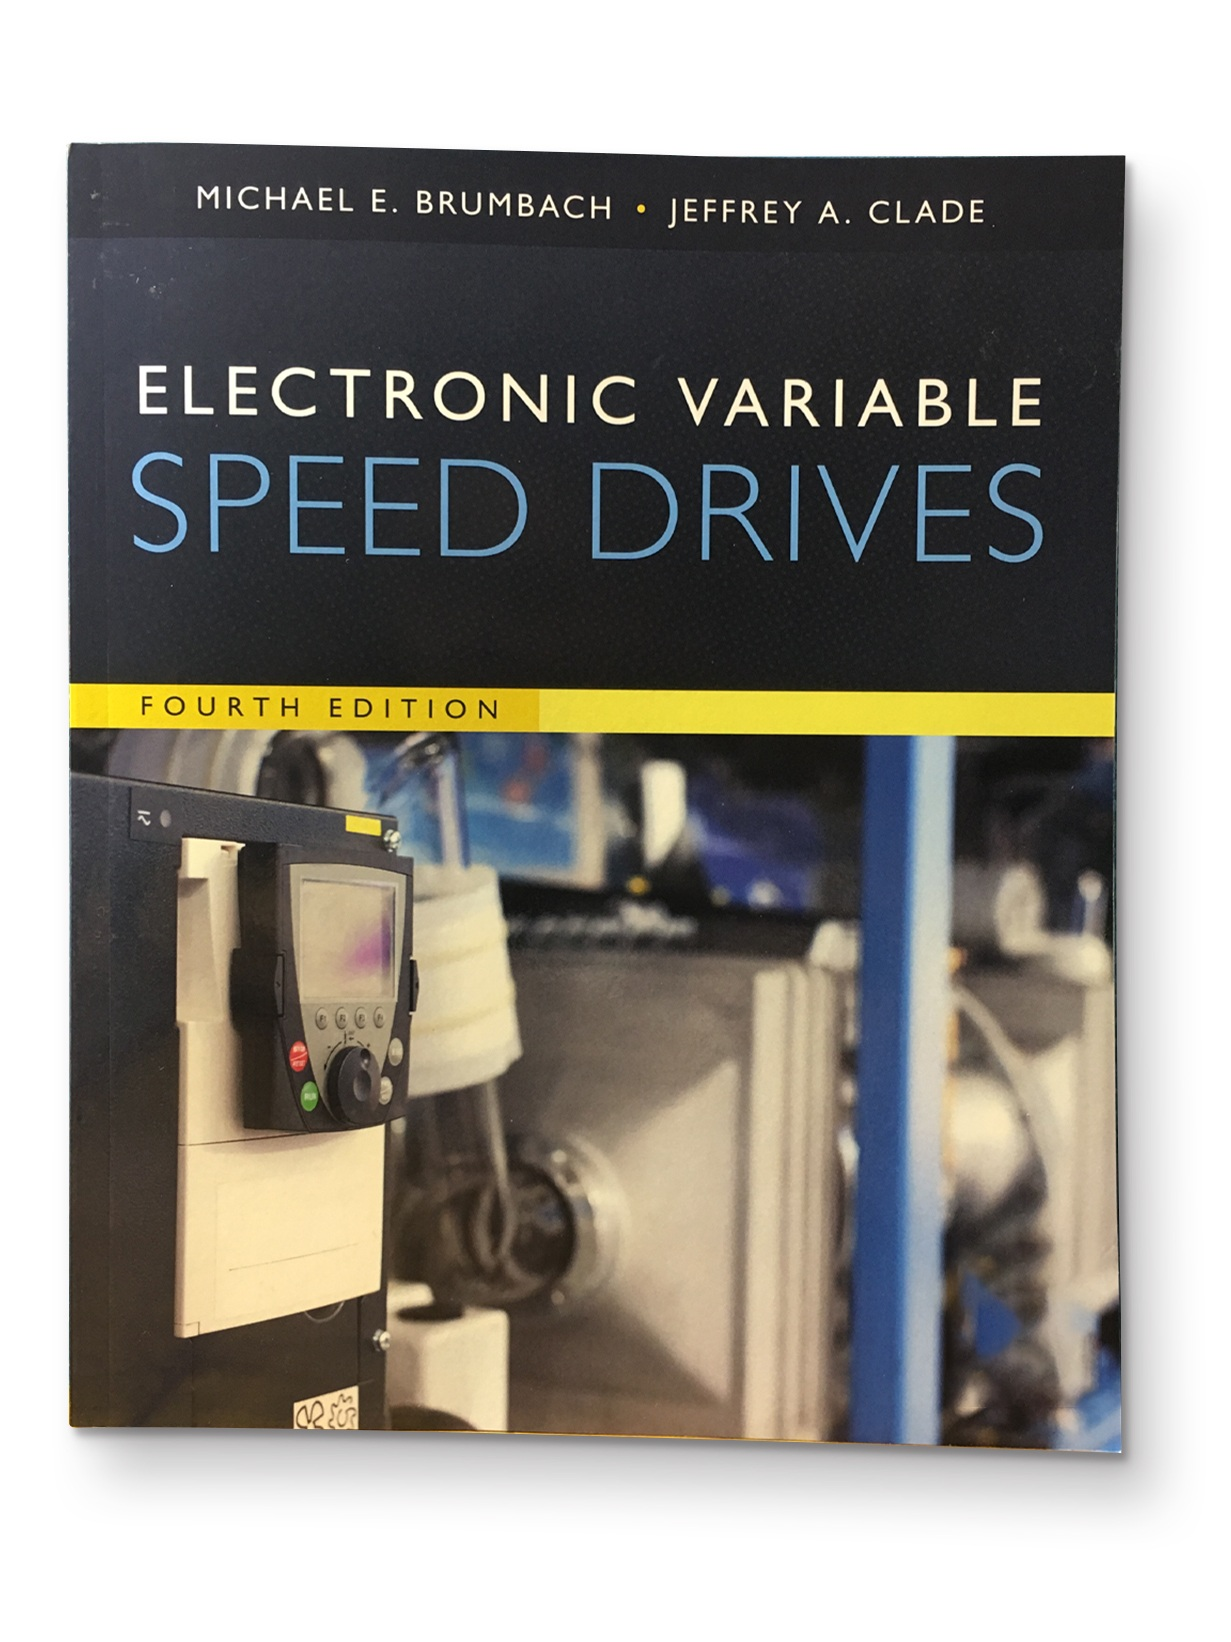 Electronic Variable Speed Drives, 4th Edition